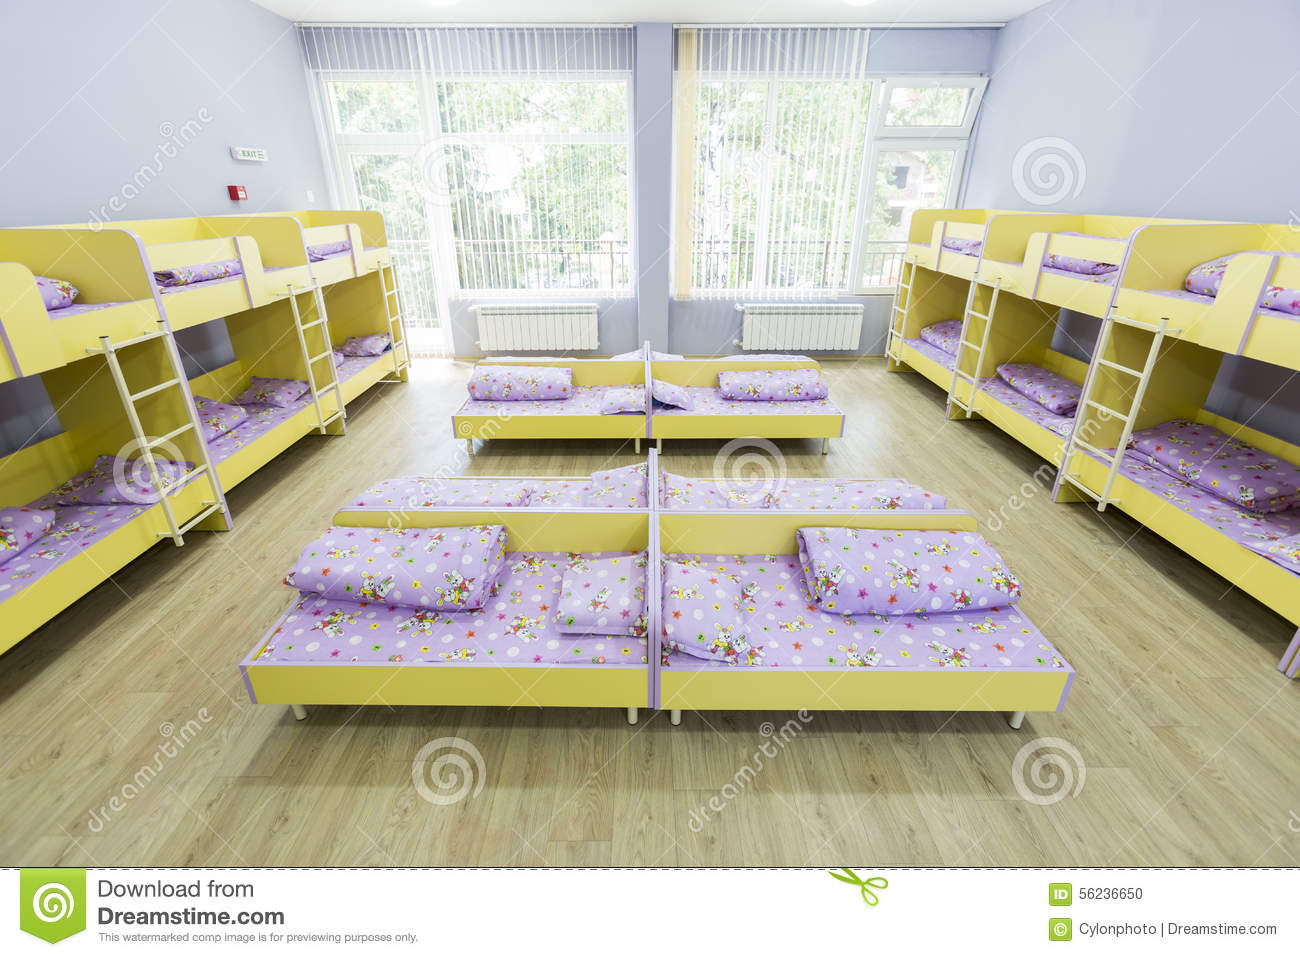 Modern Kindergarten Bedroom With Small Beds Stock Photo - Image: 56236650